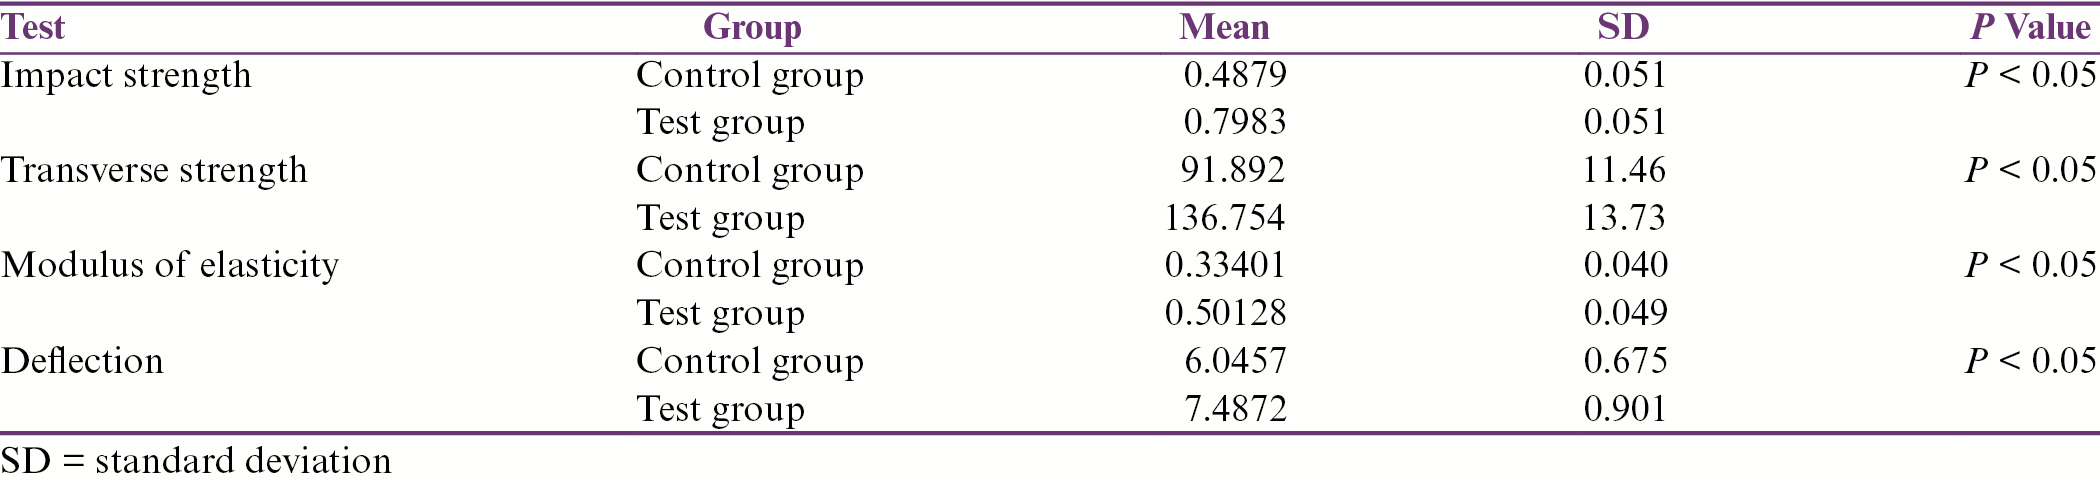 Table 1: Comparison of mean mechanical properties between acrylic resin and light-cured acrylic resin reinforced with nano-silver